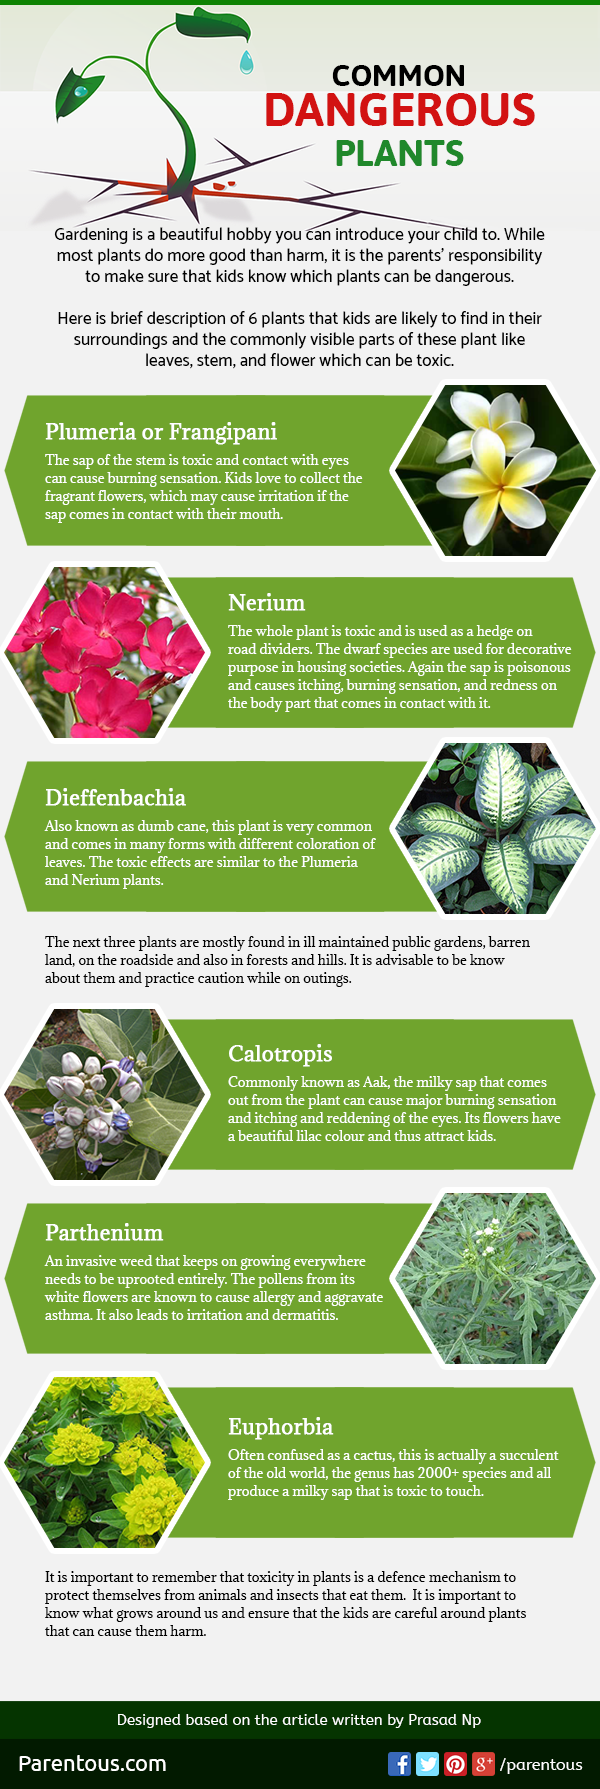 Know More About Common Dangerous Plants - Infographic